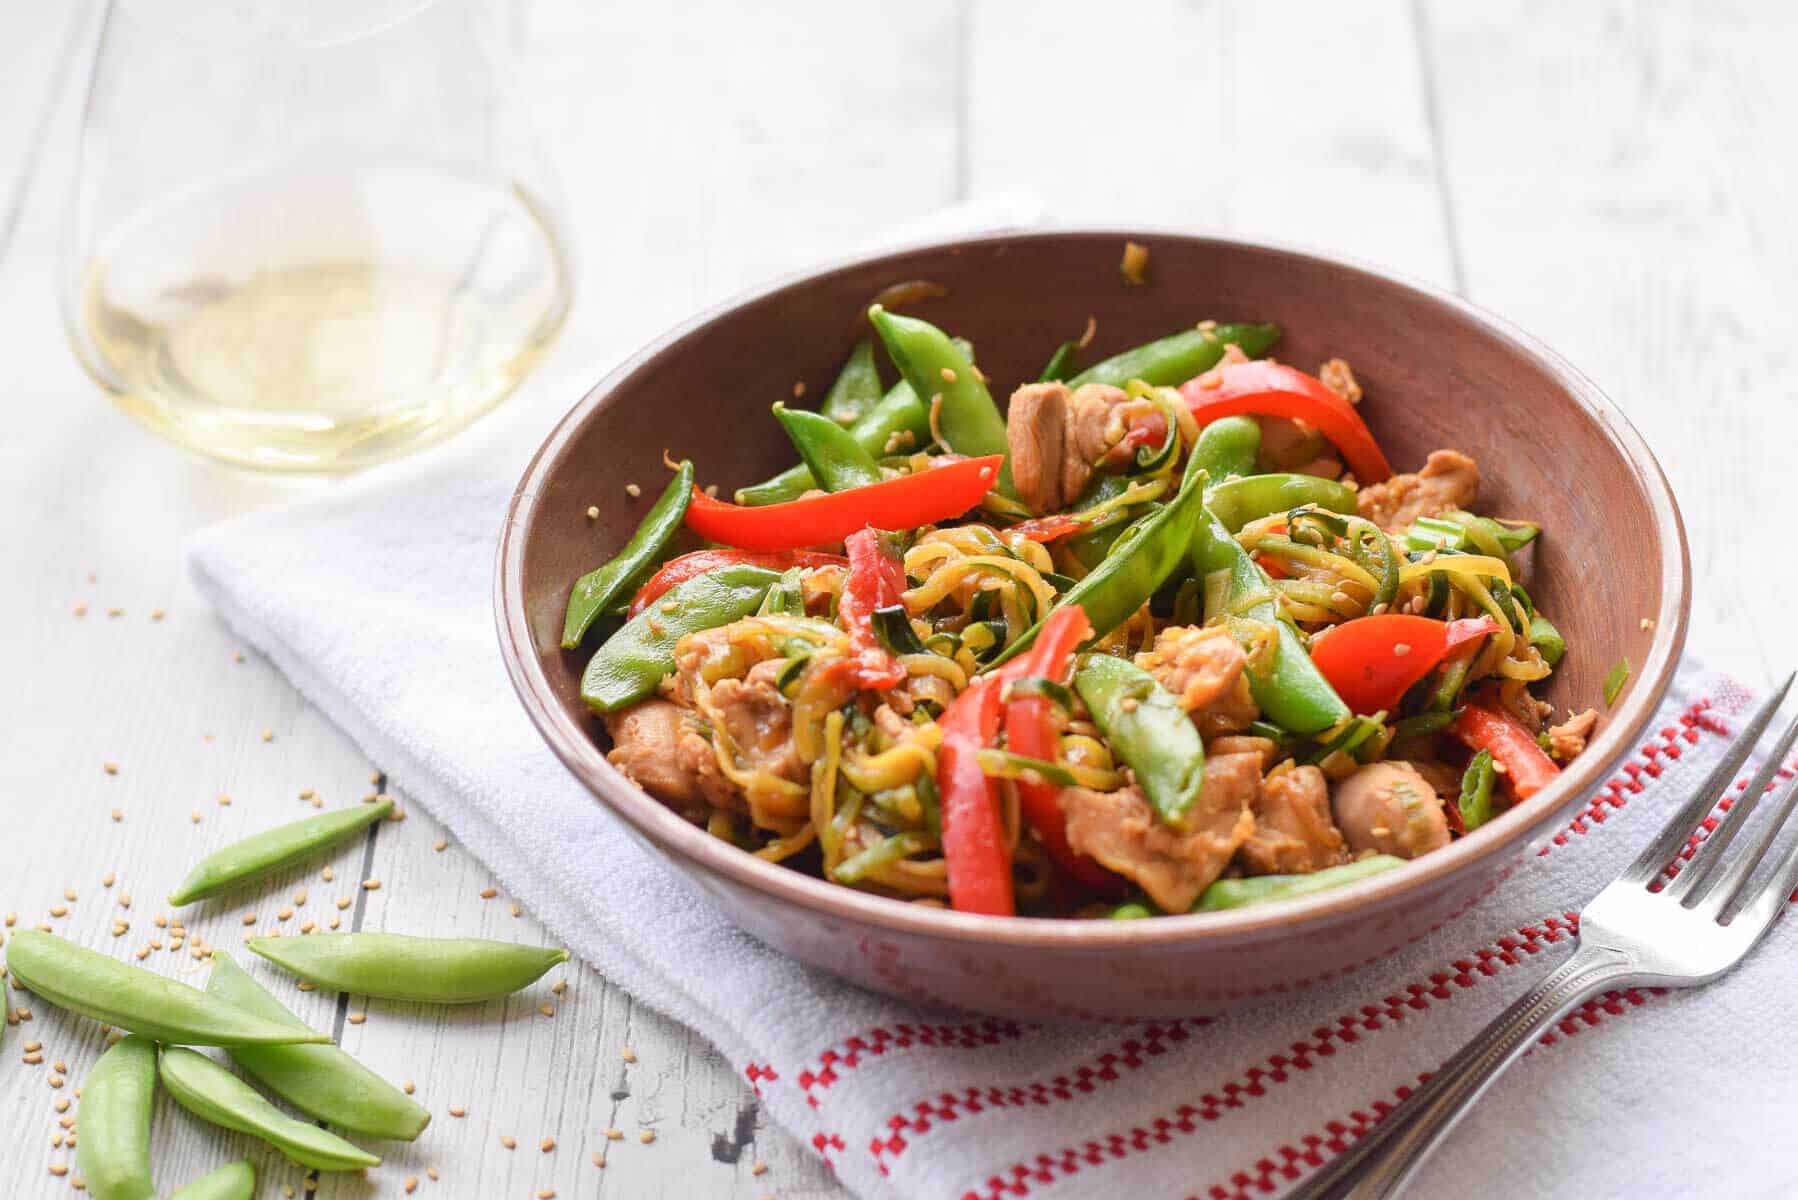 Zucchini Noodle Stir Fry with Chicken and snap peas